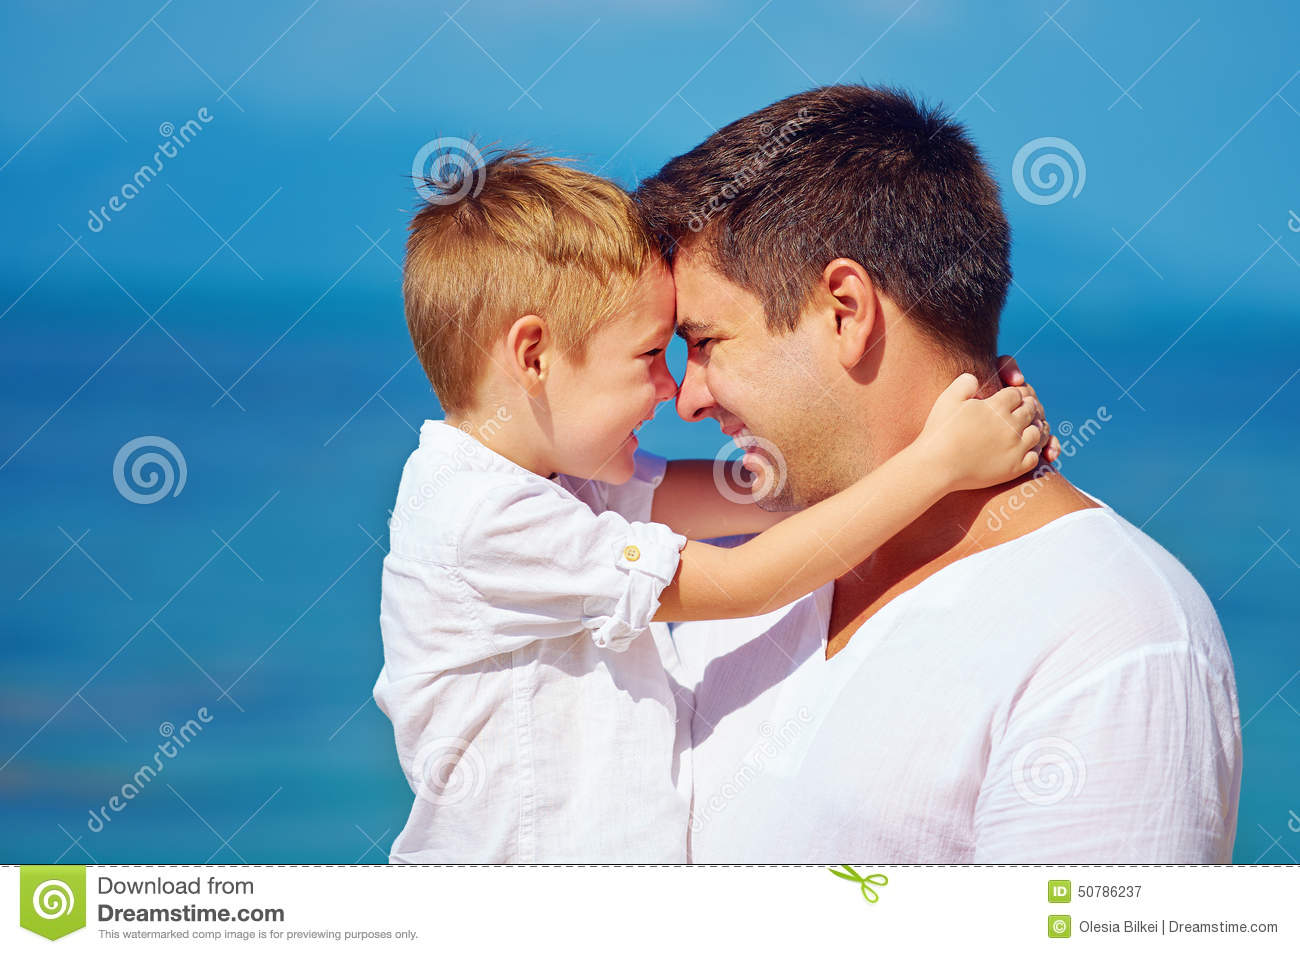 father and son relationship images